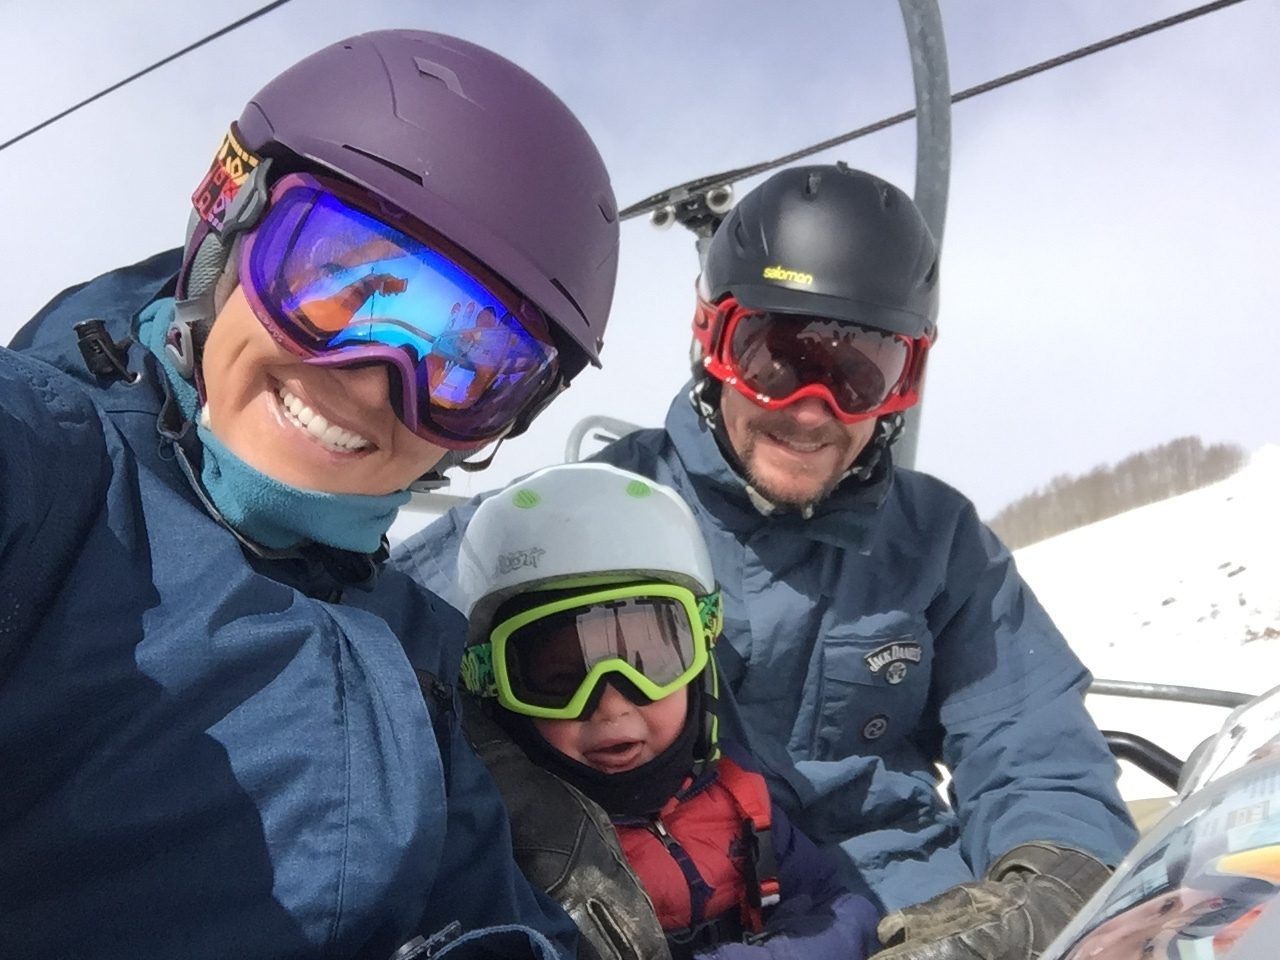 Skiing with the family.  This was Keiran's first day up Red Lady chairlift and he was so excited!